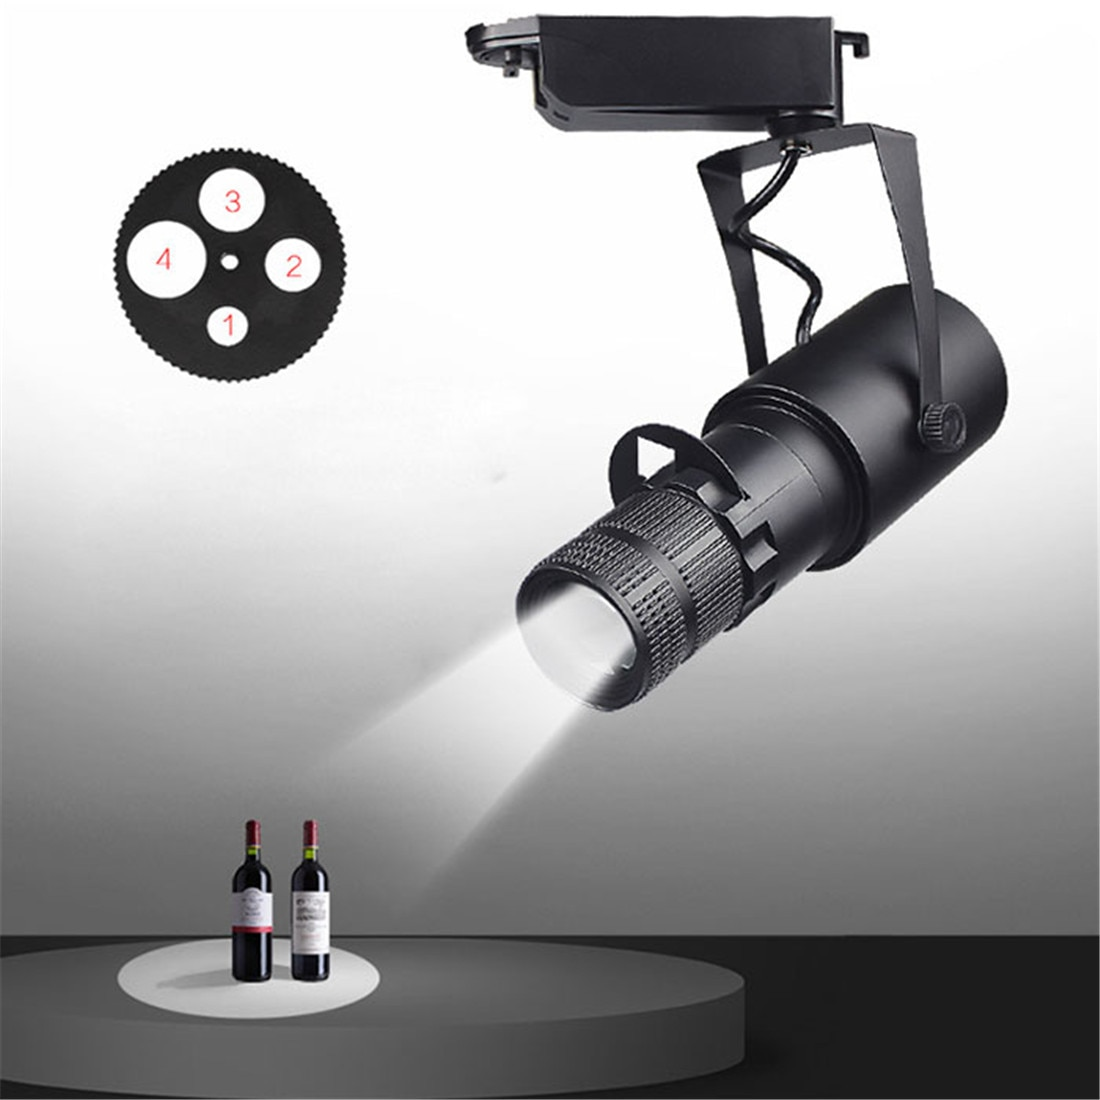 AliExpress - Theater Stage Zoom Spotlights, LED Focus Logo Projector Track Lights,Industrial Gobo Lights for Company Restaurant Store Wedding